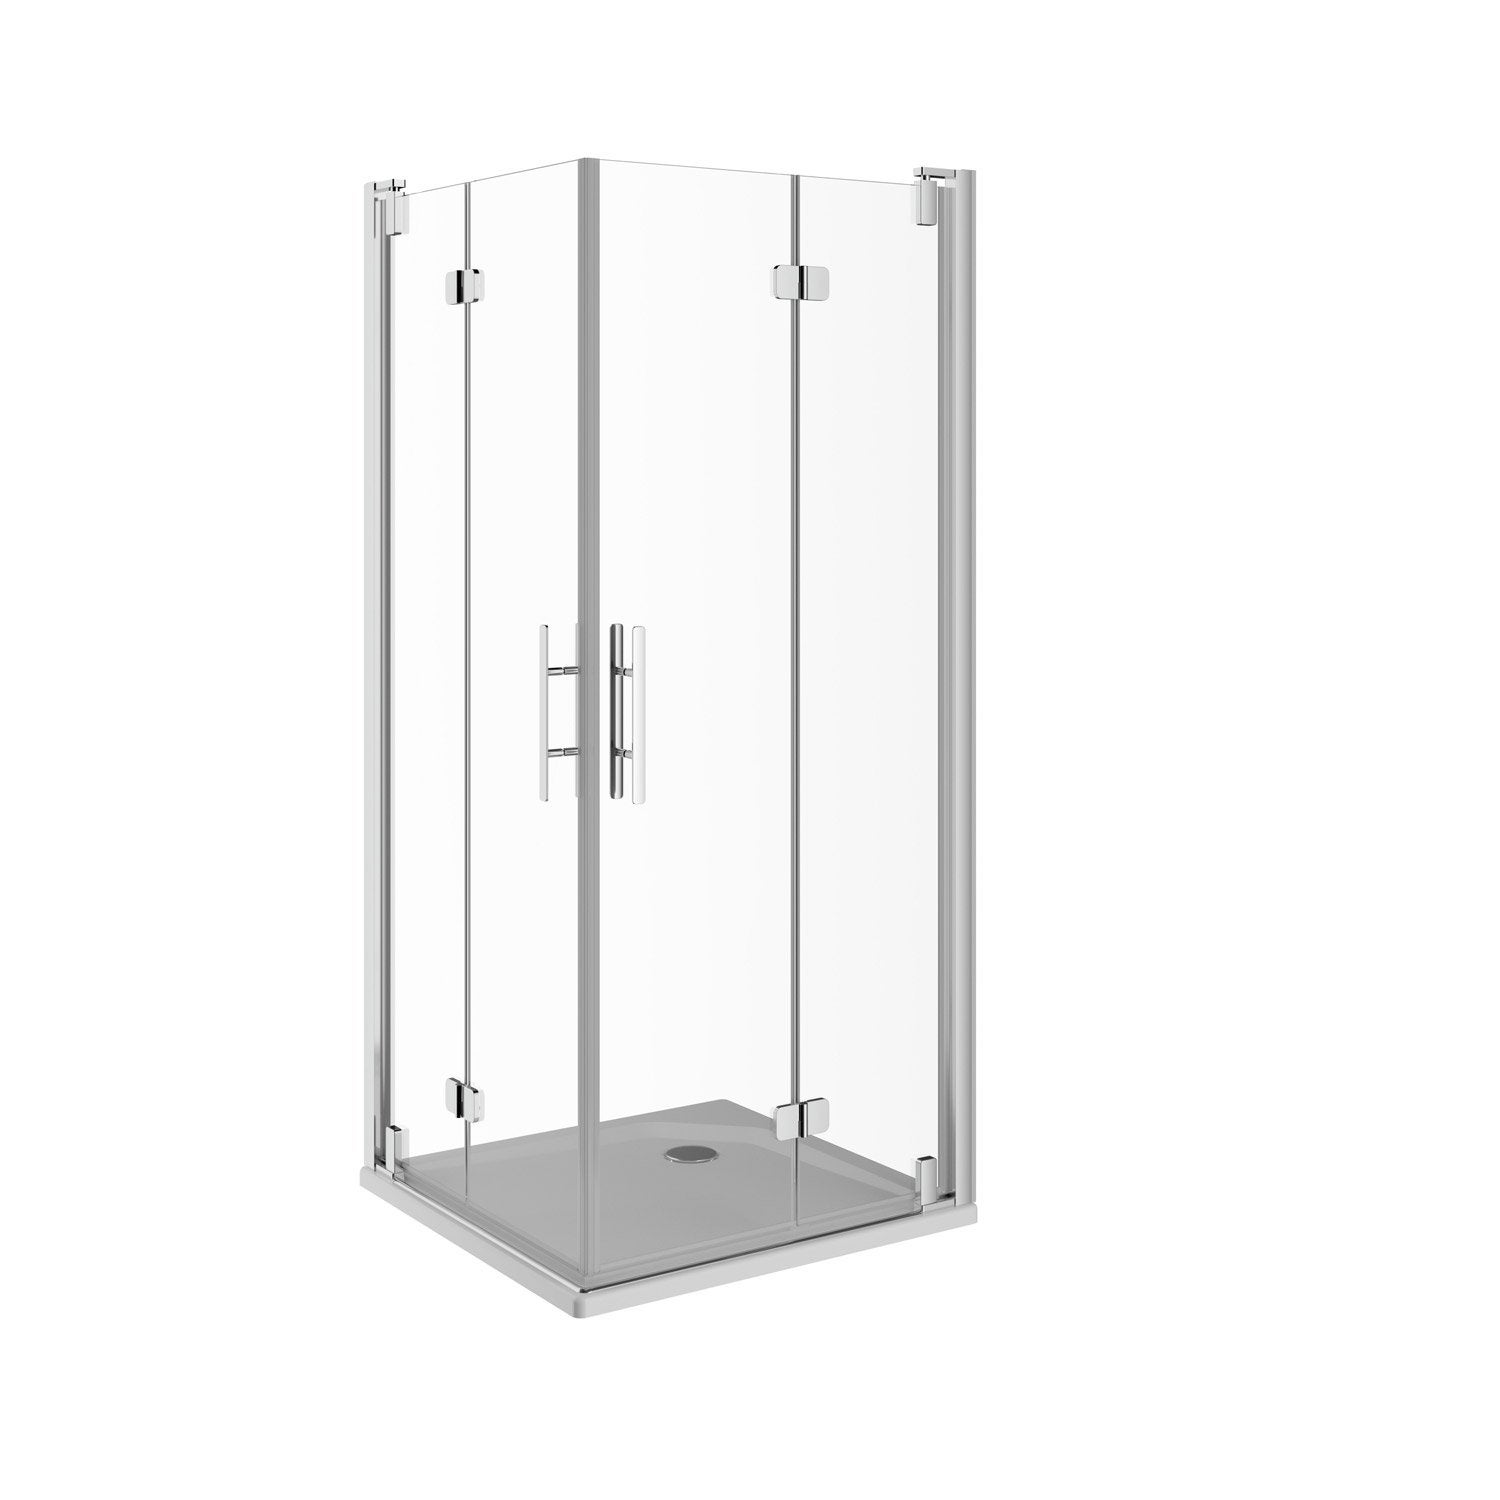 porte de douche pivot pliante angle carr 90 x 80 cm transparent adena leroy merlin. Black Bedroom Furniture Sets. Home Design Ideas